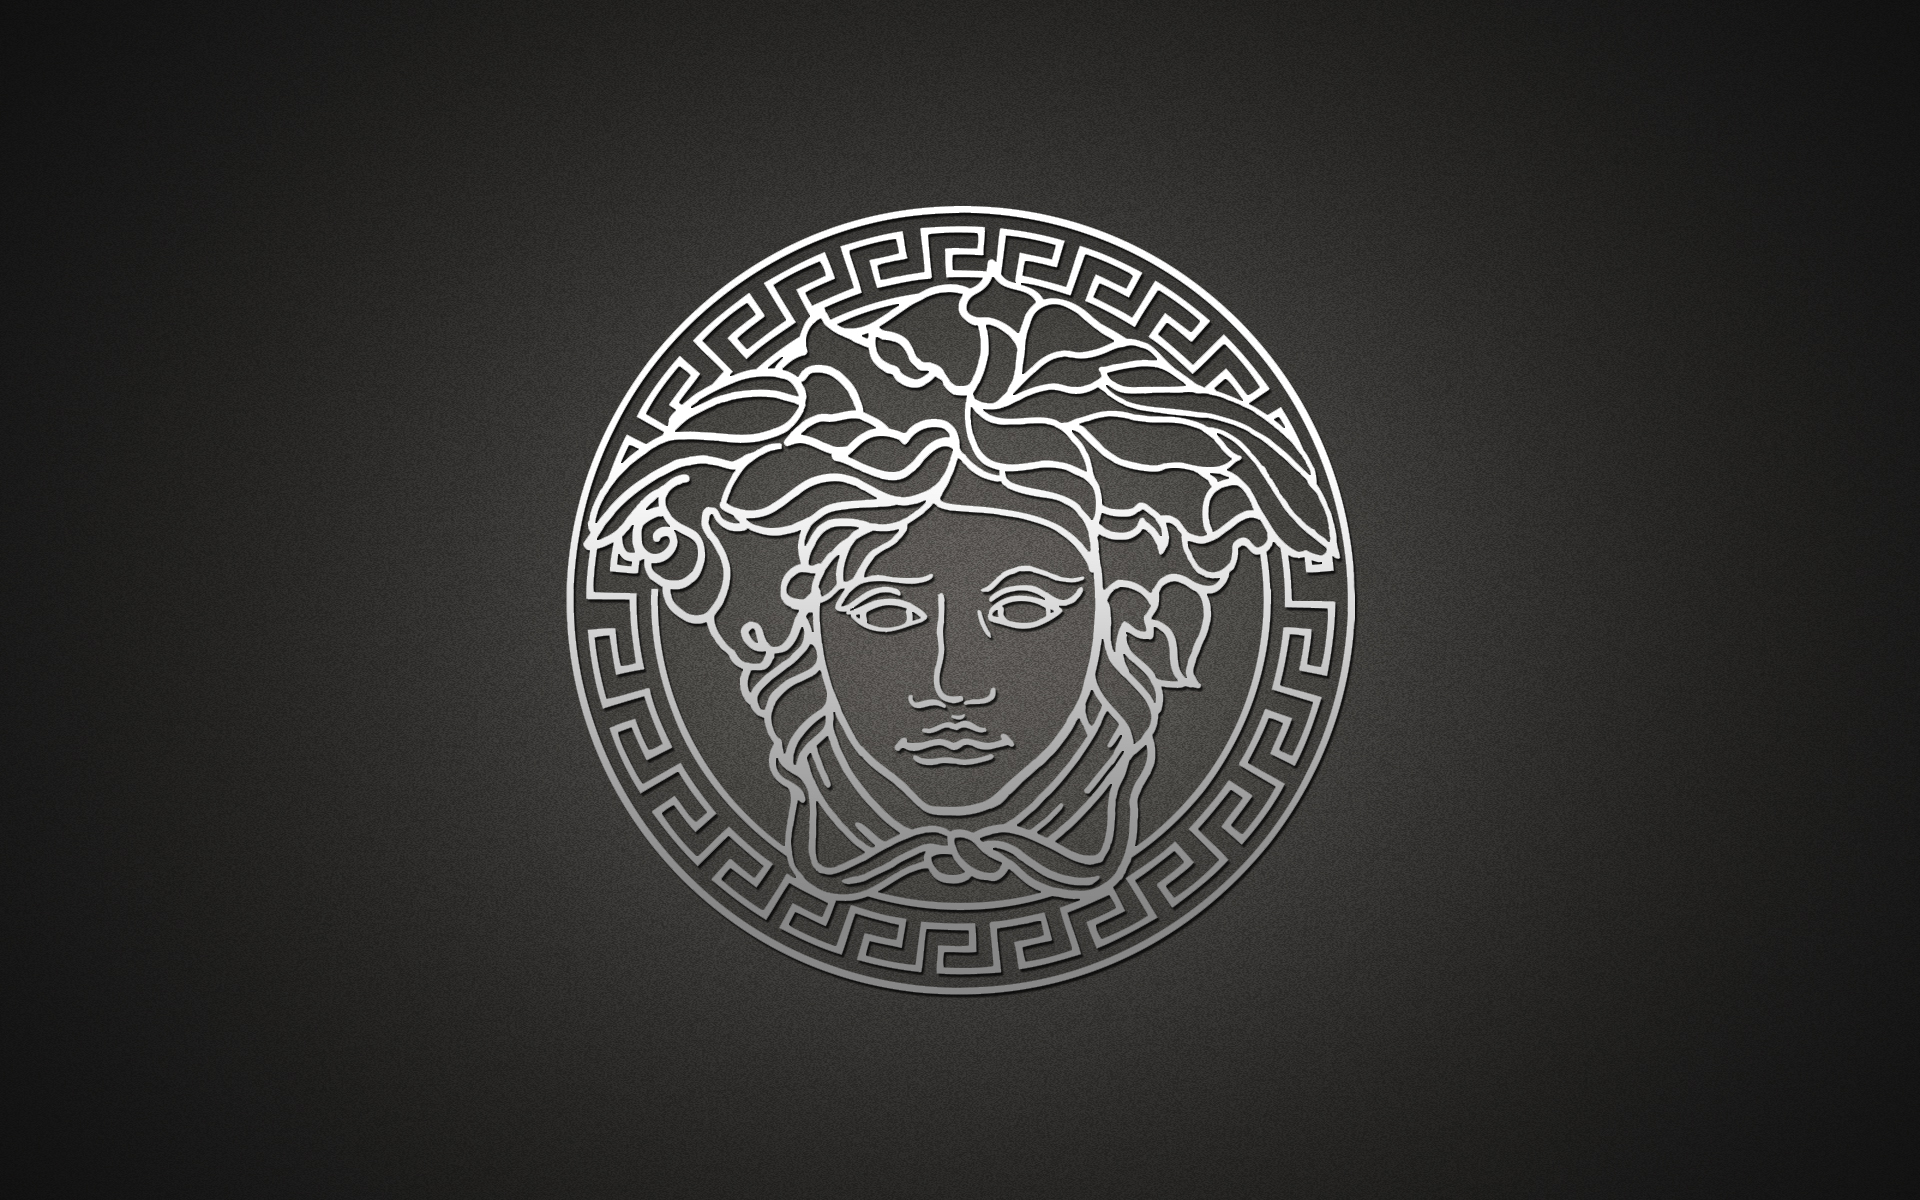 Versace Wallpaper – Your Wallpaper For PC